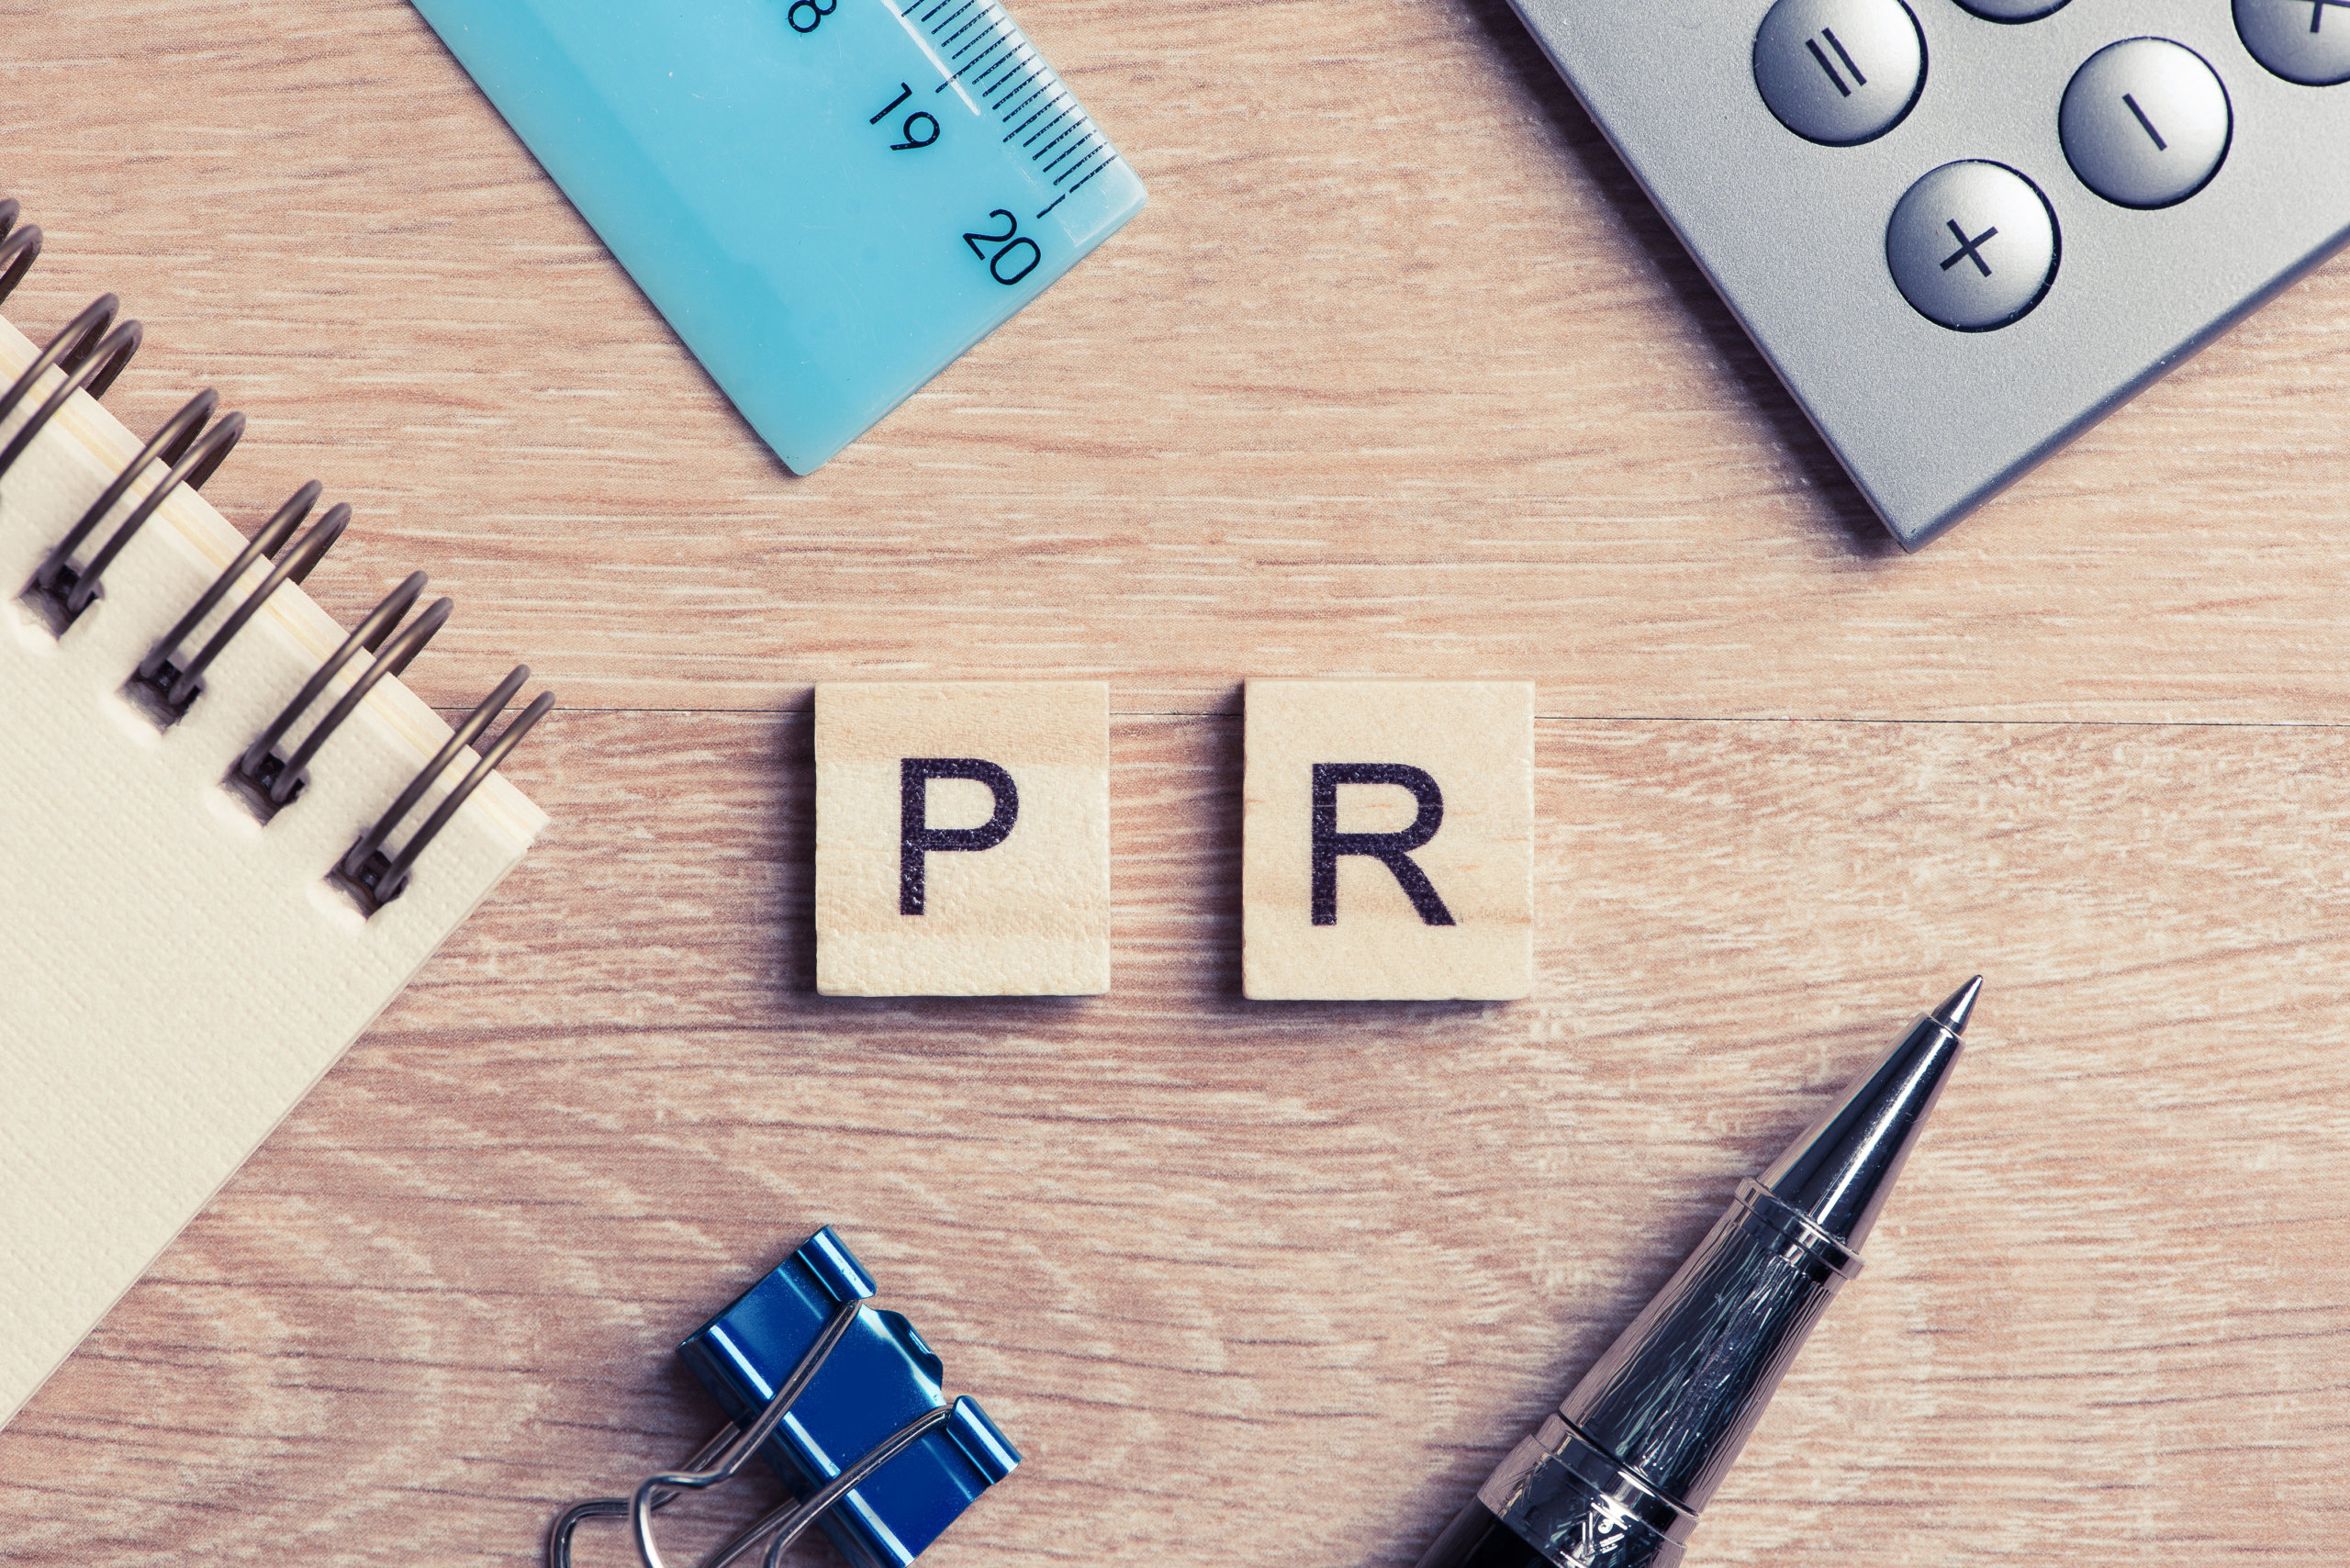 5 new trends that will shake up the PR world in 2021